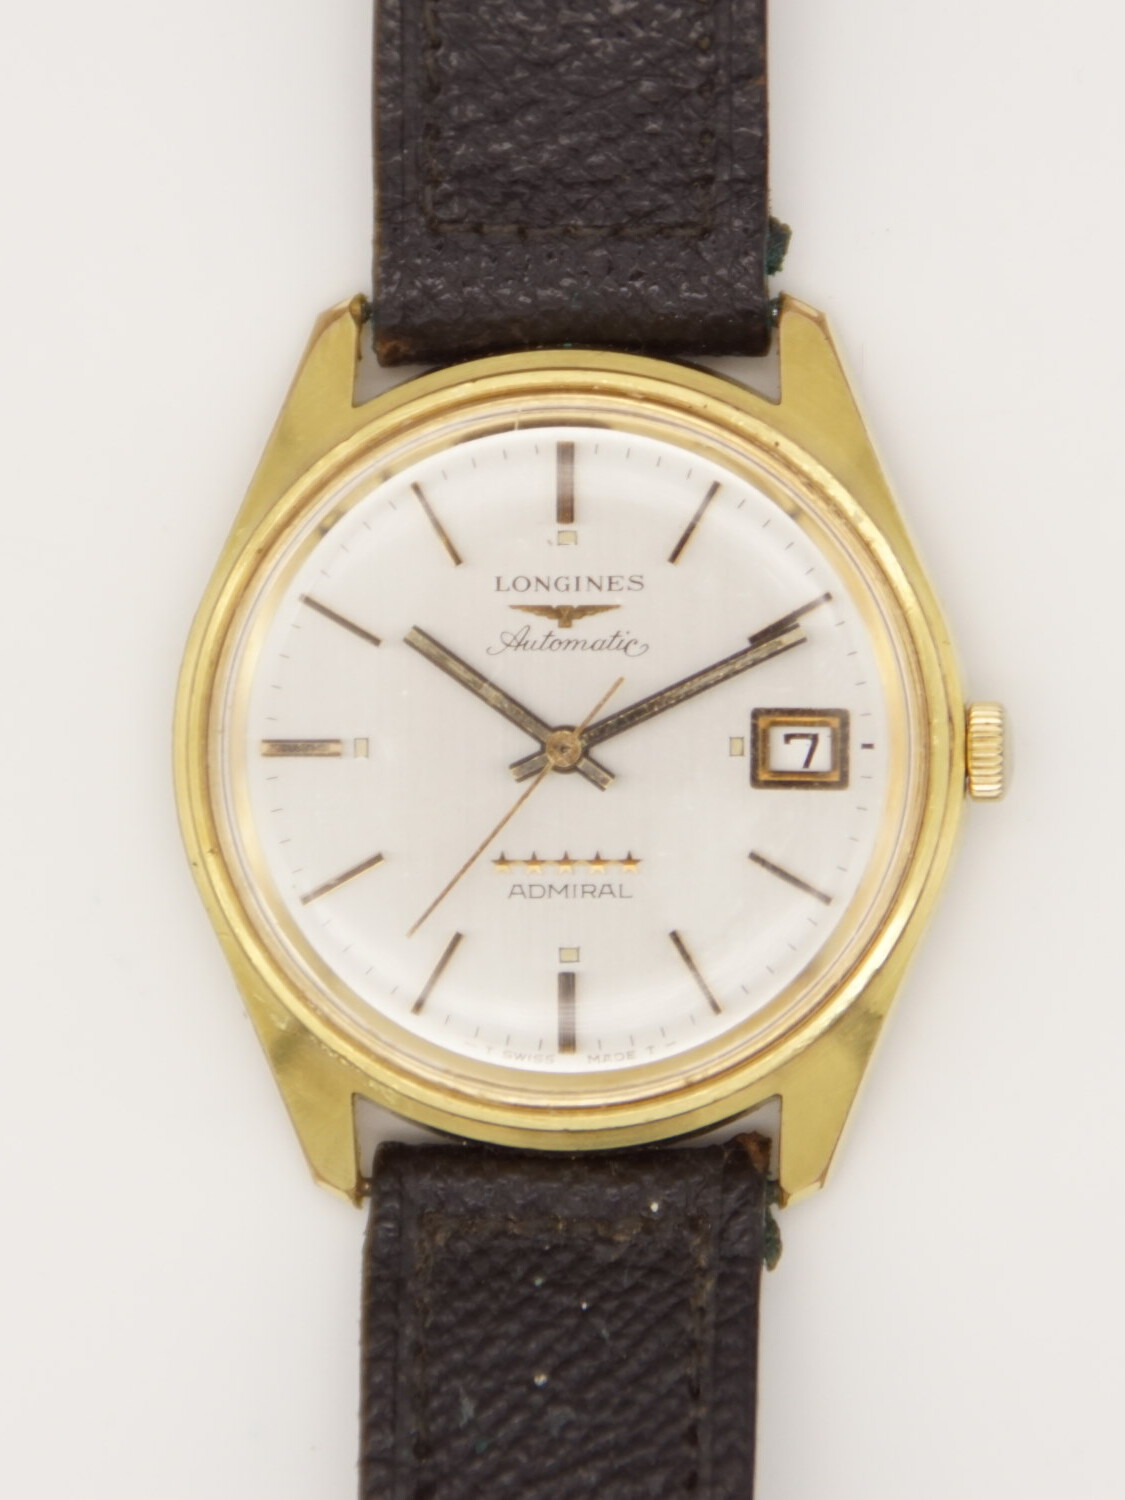 Longines Admiral 8201-1 Cal. 501